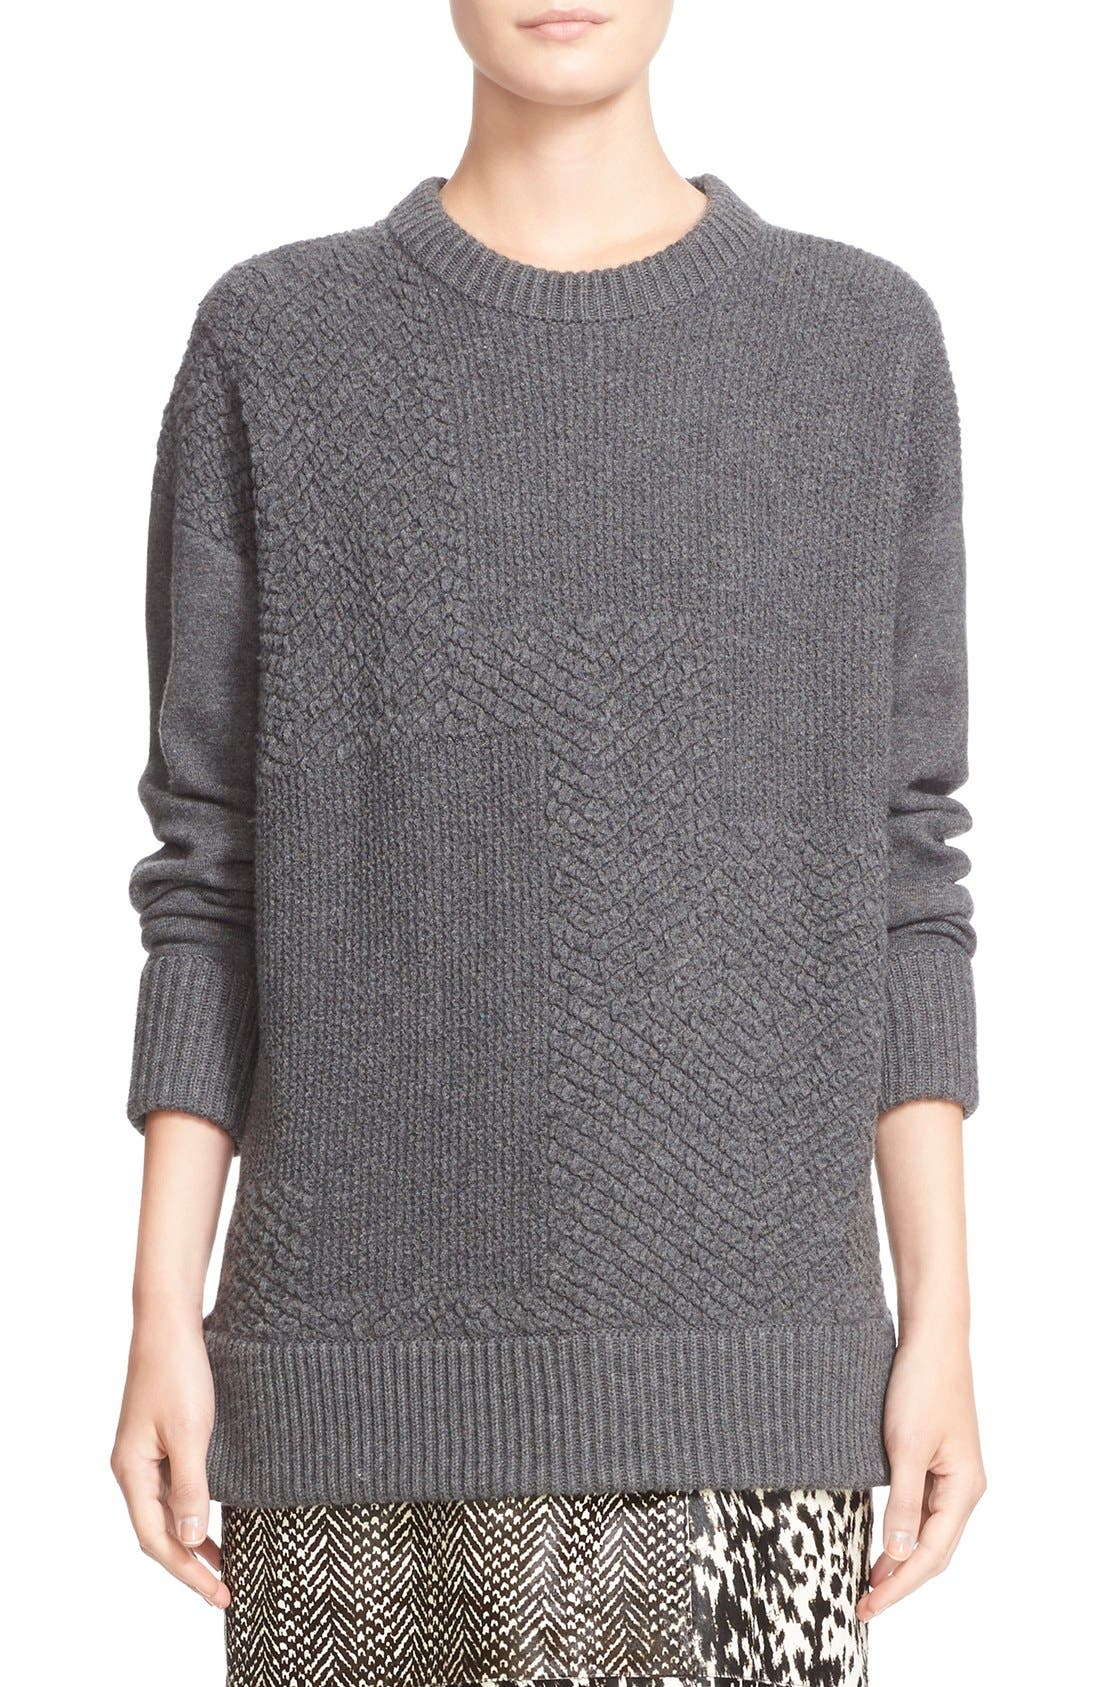 Alternate Image 1 Selected - Jason Wu Cashmere & Wool Blend Textured Sweater